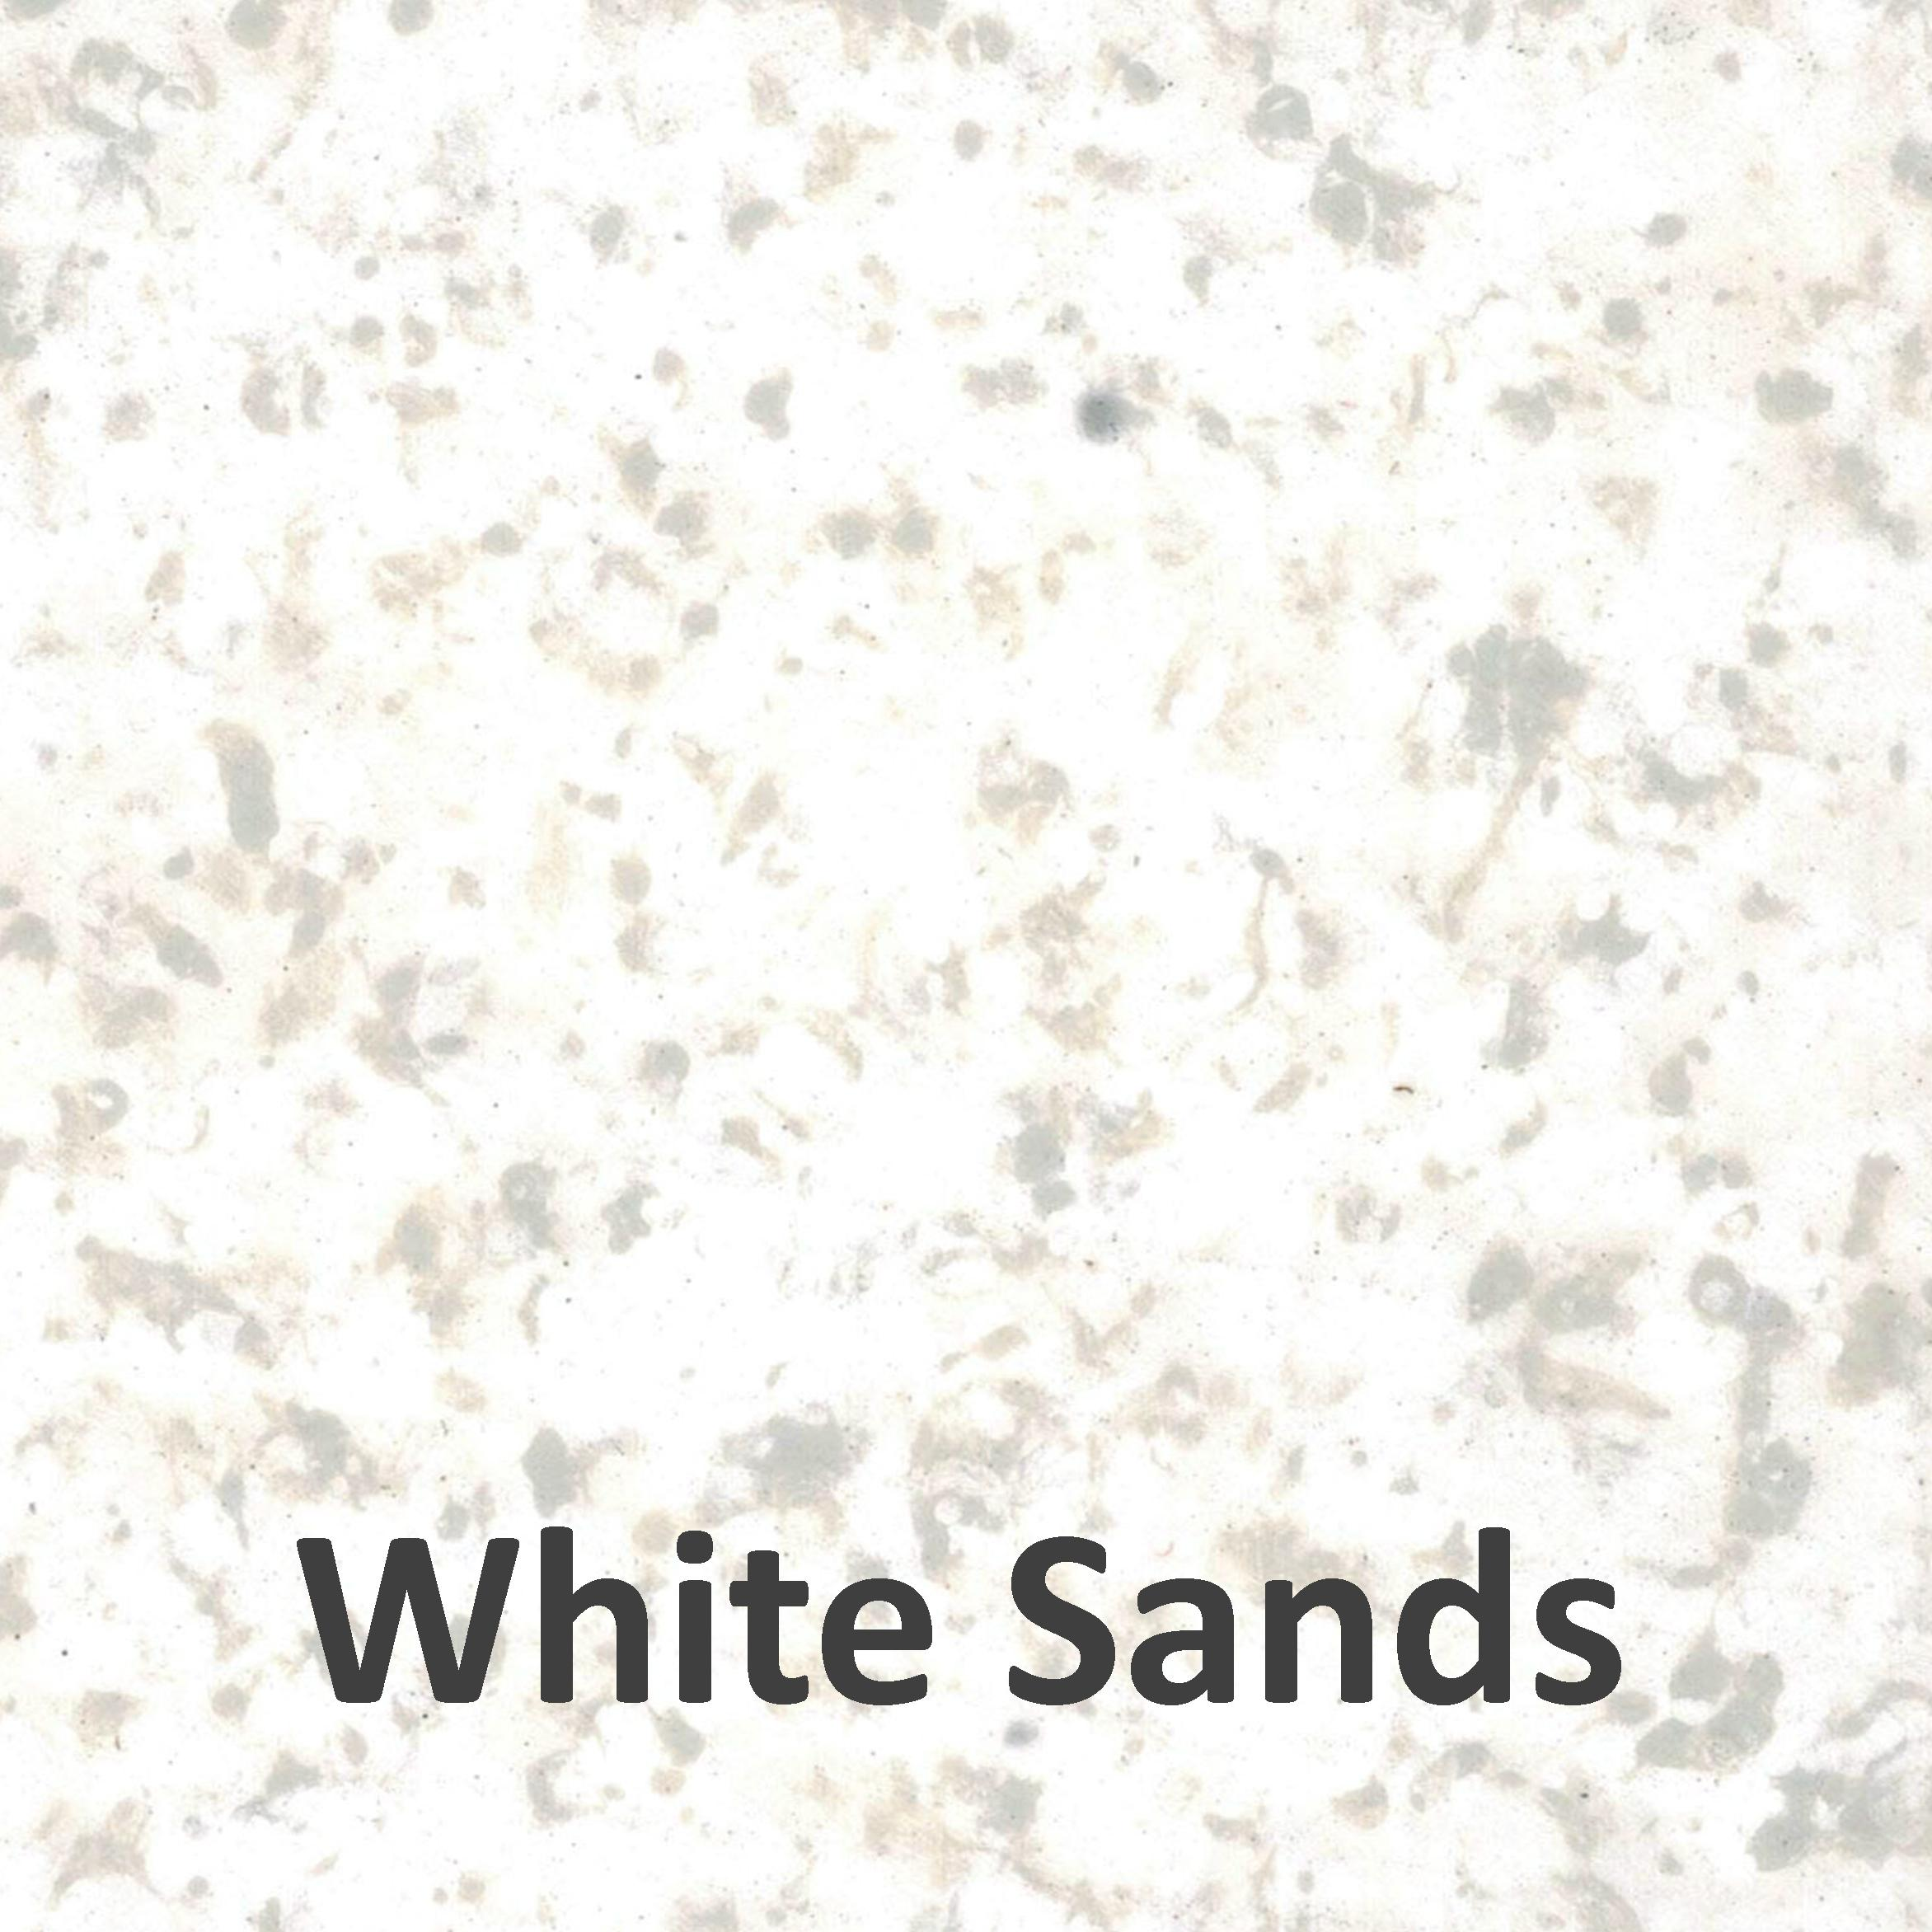 white-sands-label.jpg